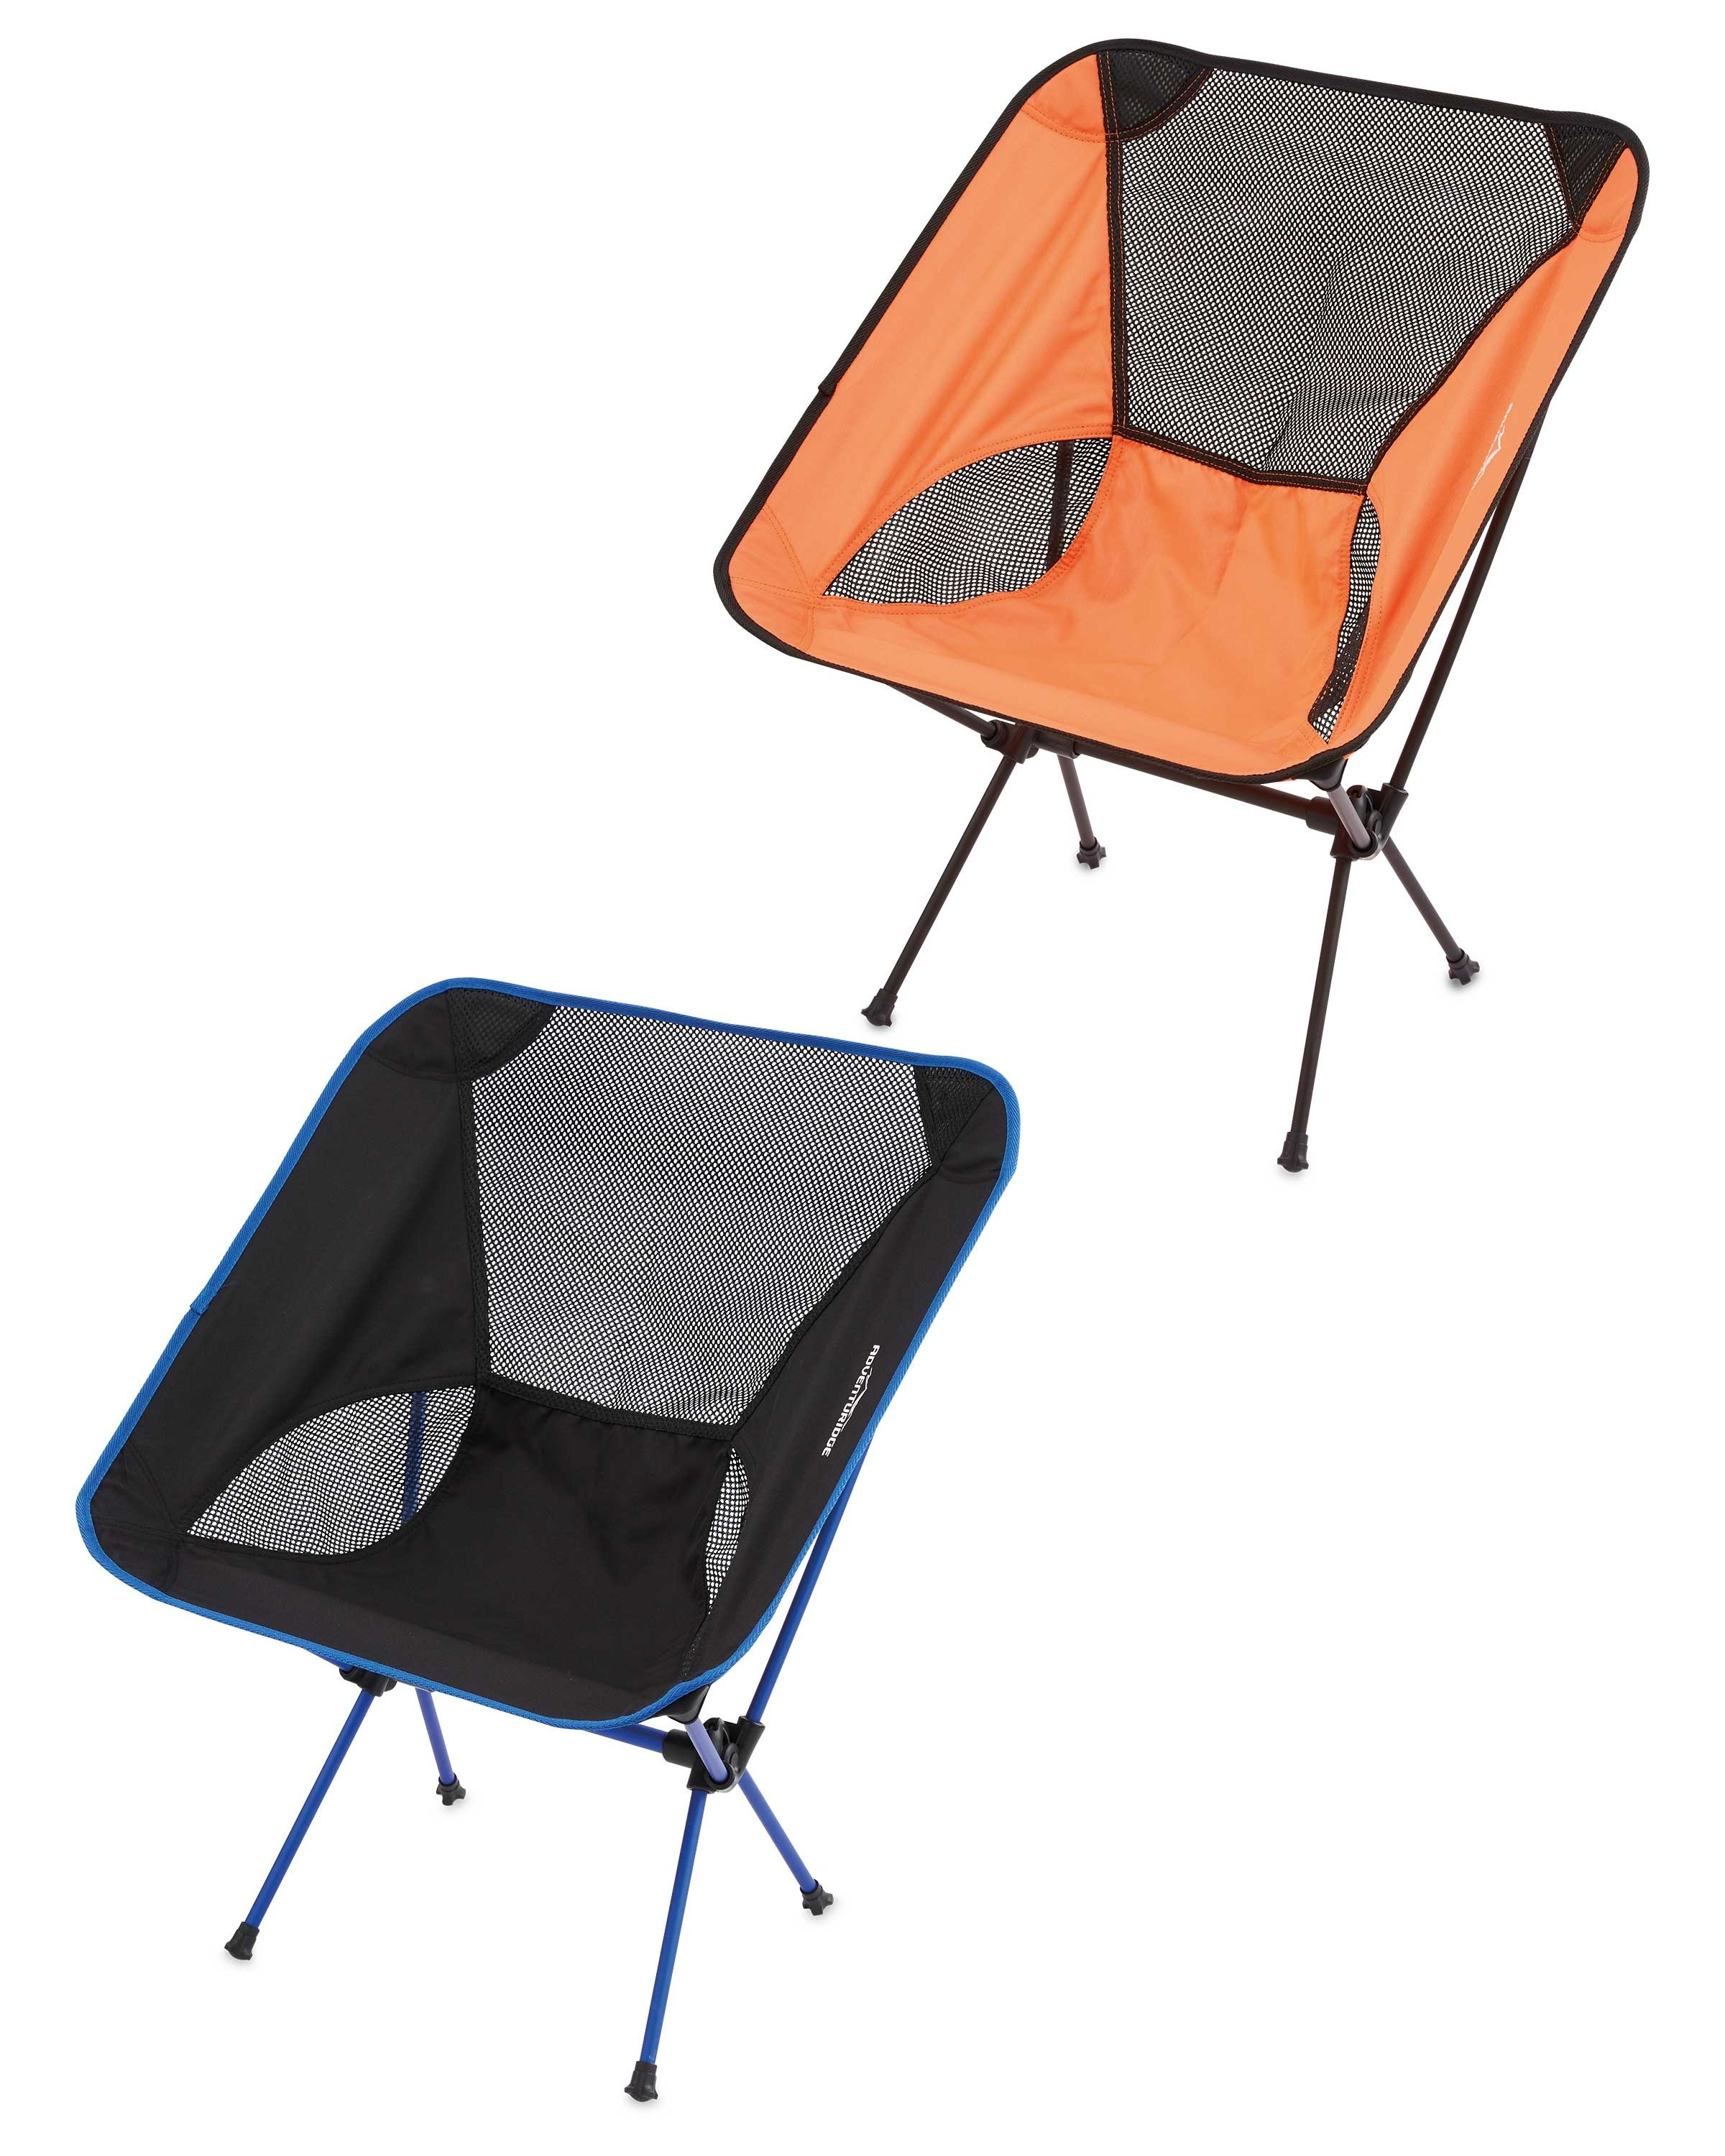 Tremendous Ultra Light Camping Chair Onthecornerstone Fun Painted Chair Ideas Images Onthecornerstoneorg